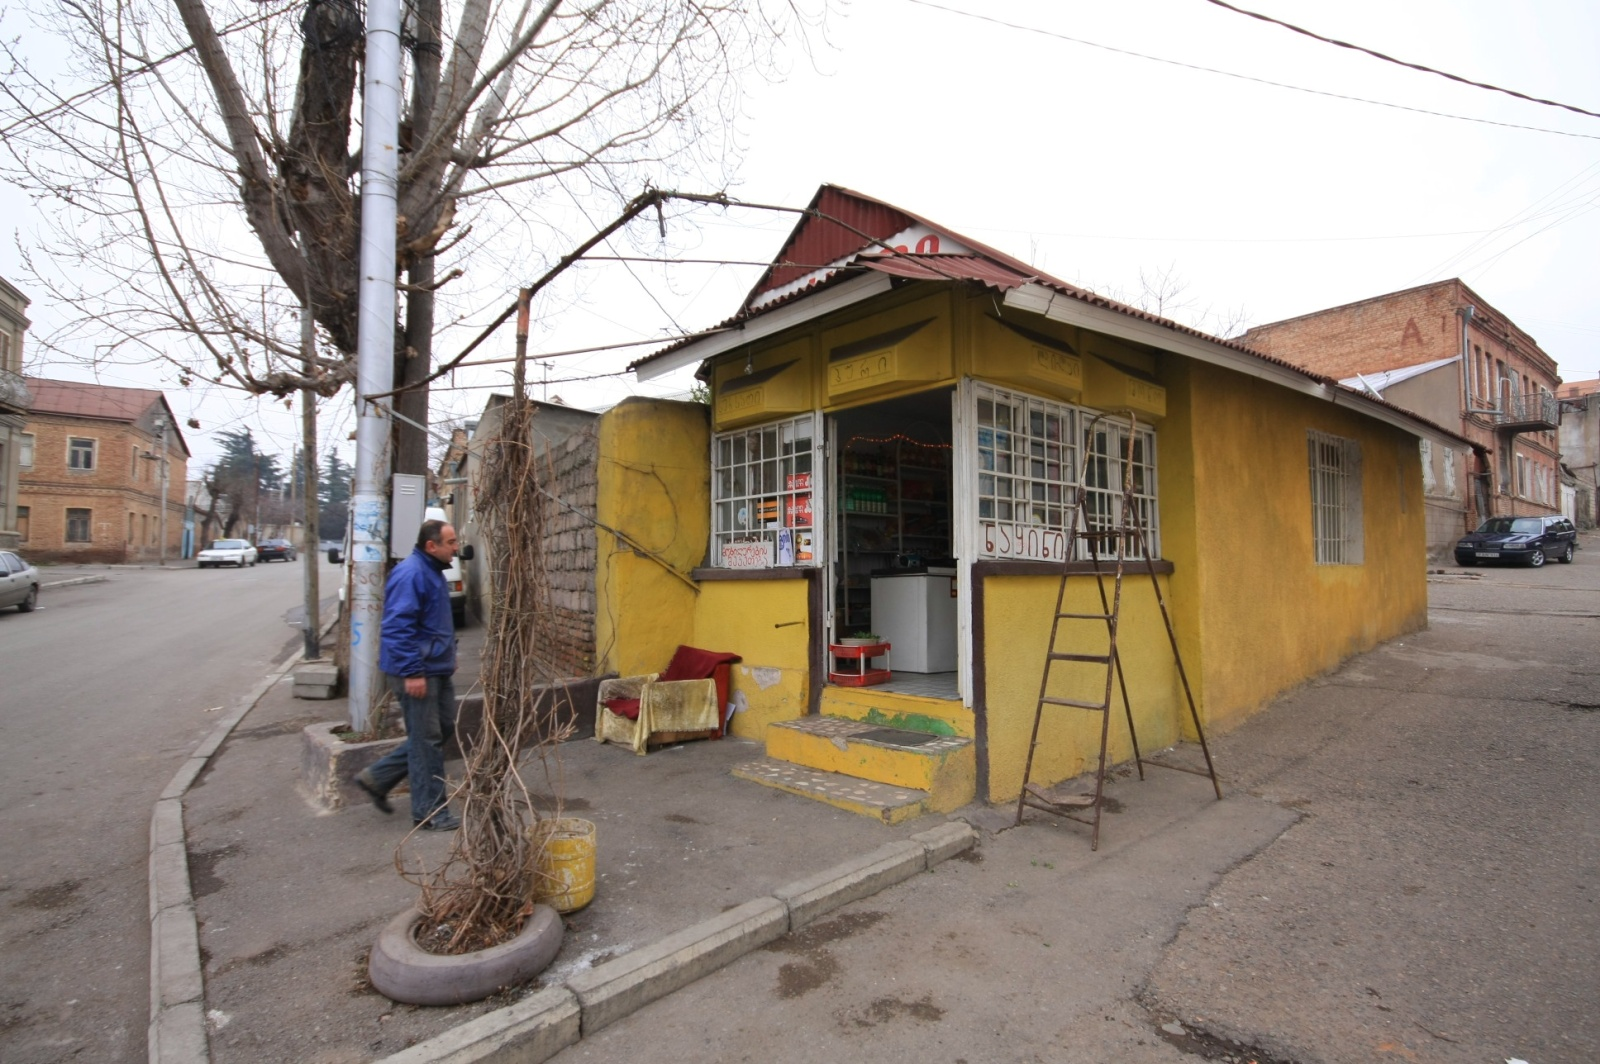 A typical place to grab a beer, or even better, some authentic Soviet-style lemonade